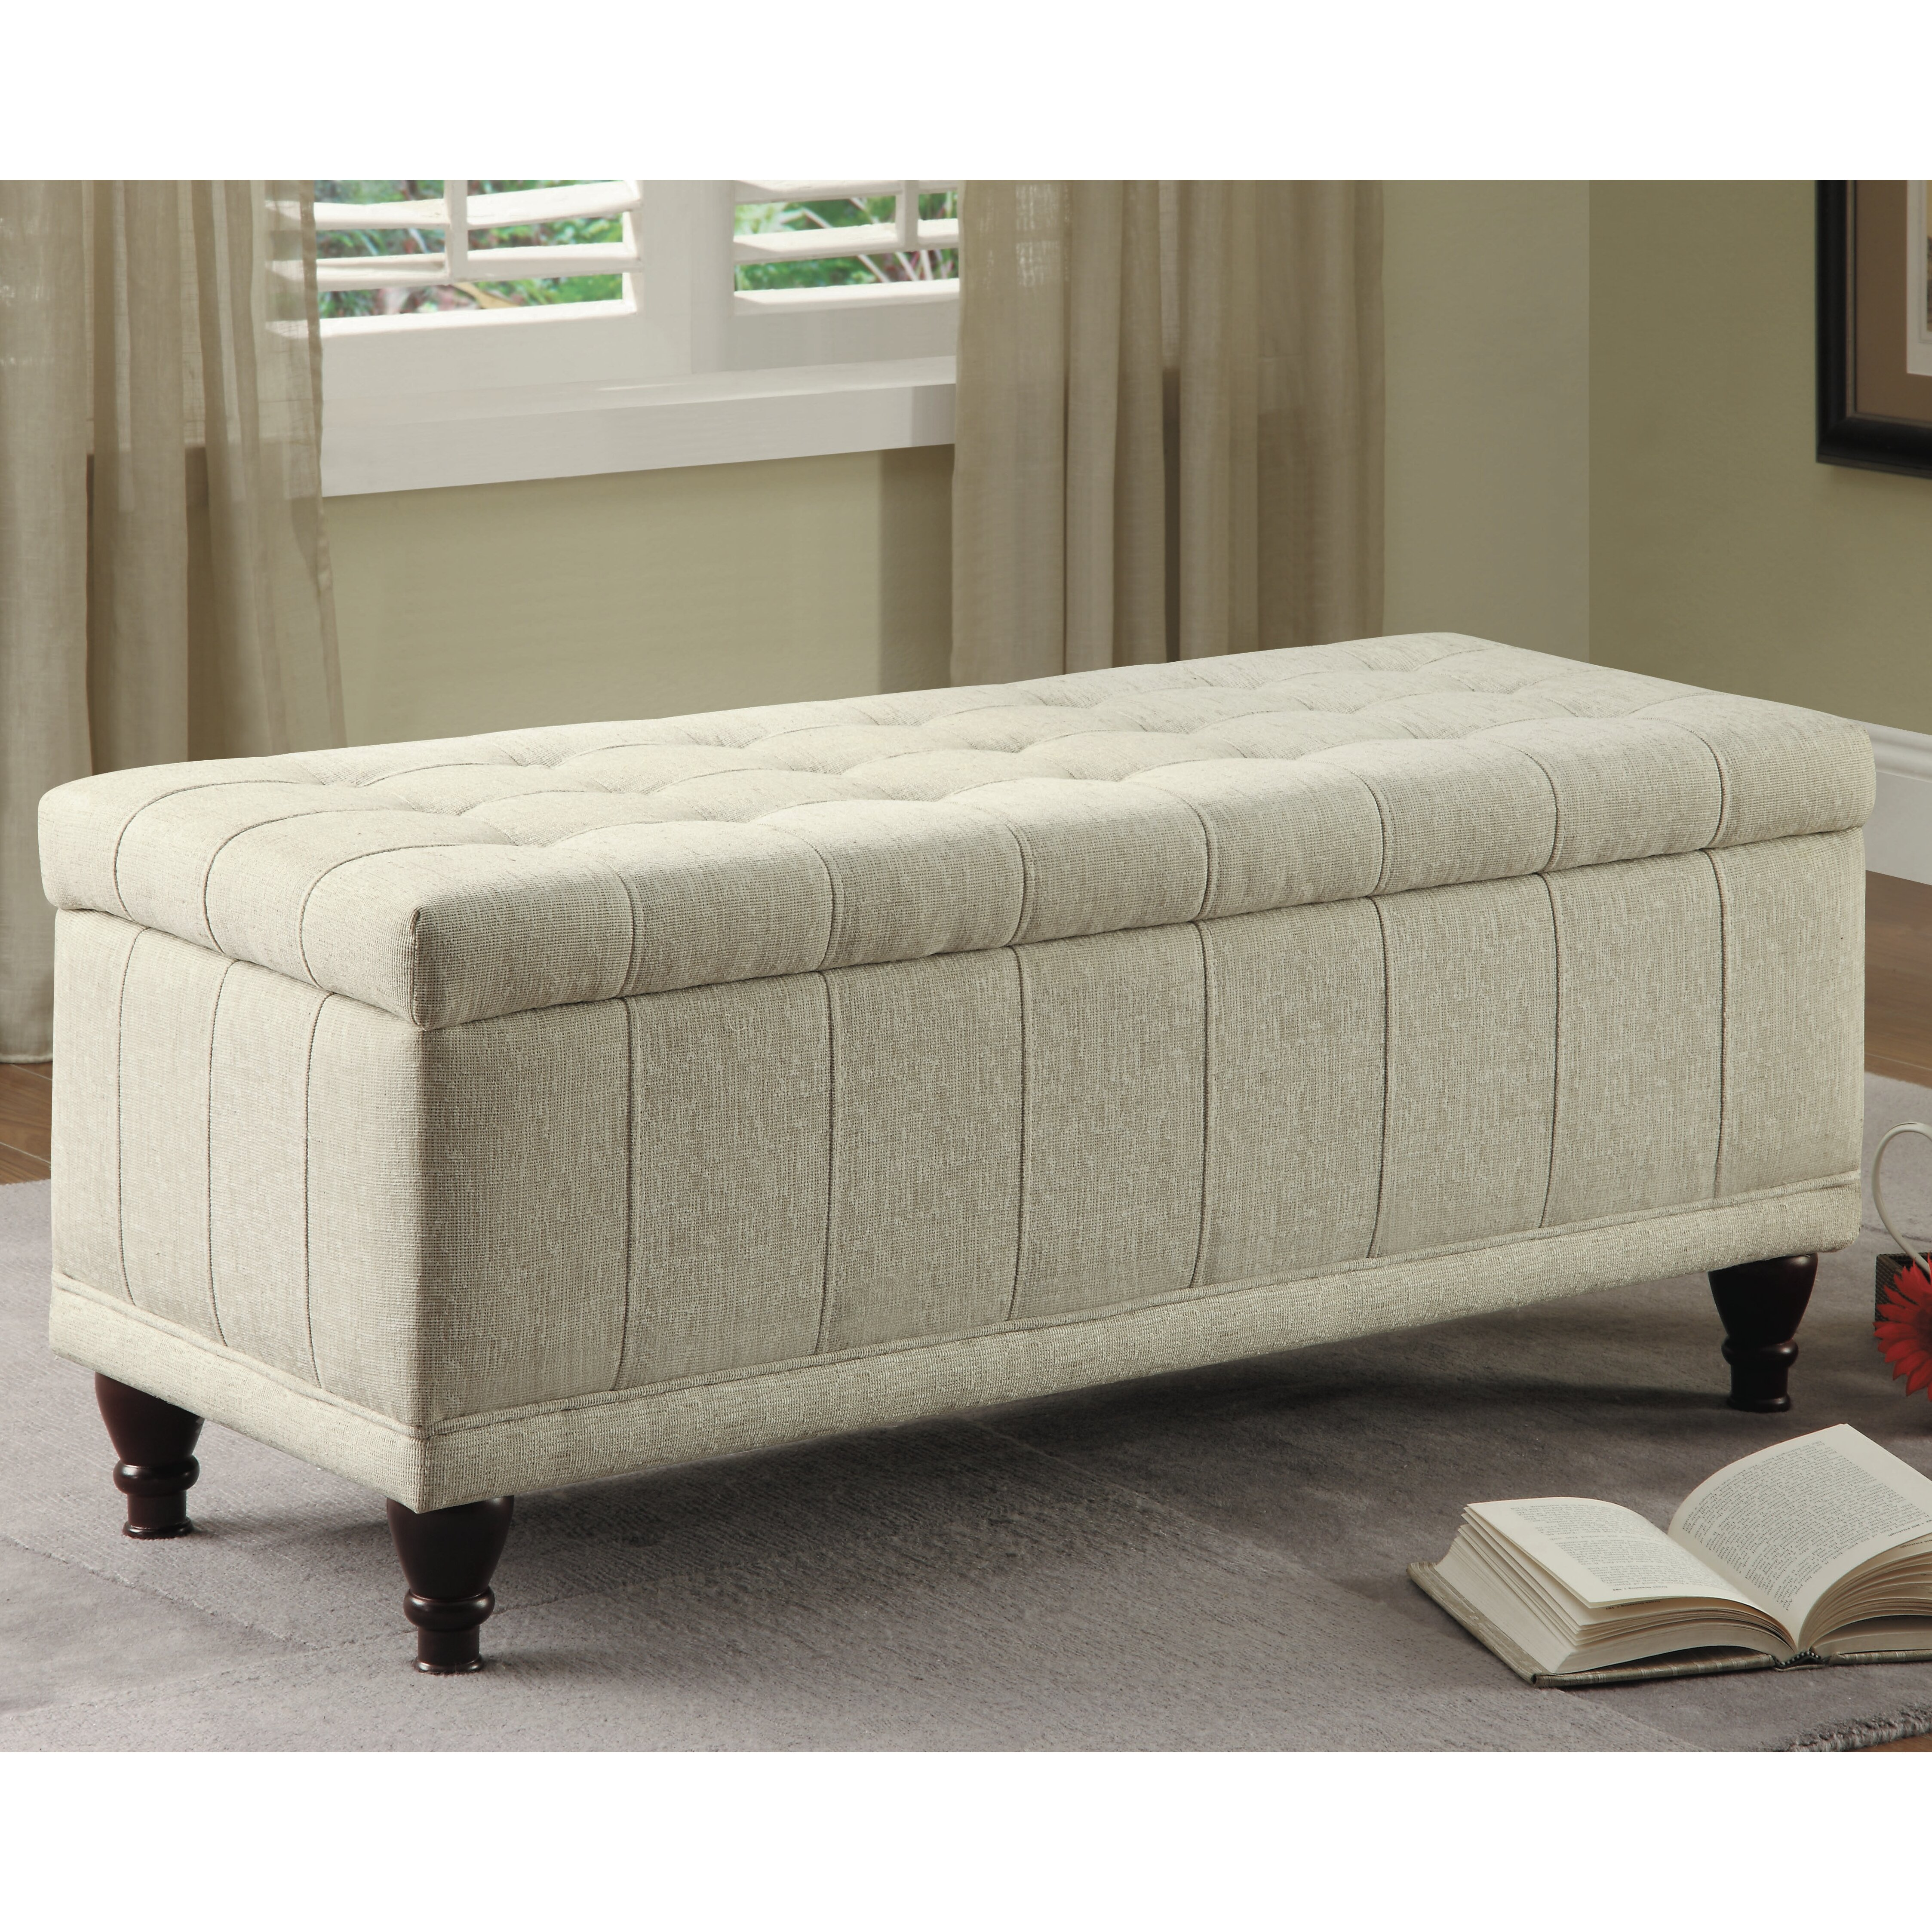 Ottoman For Bedroom Darby Home Co Attles Fabric Bedroom Storage Bedroom Bench